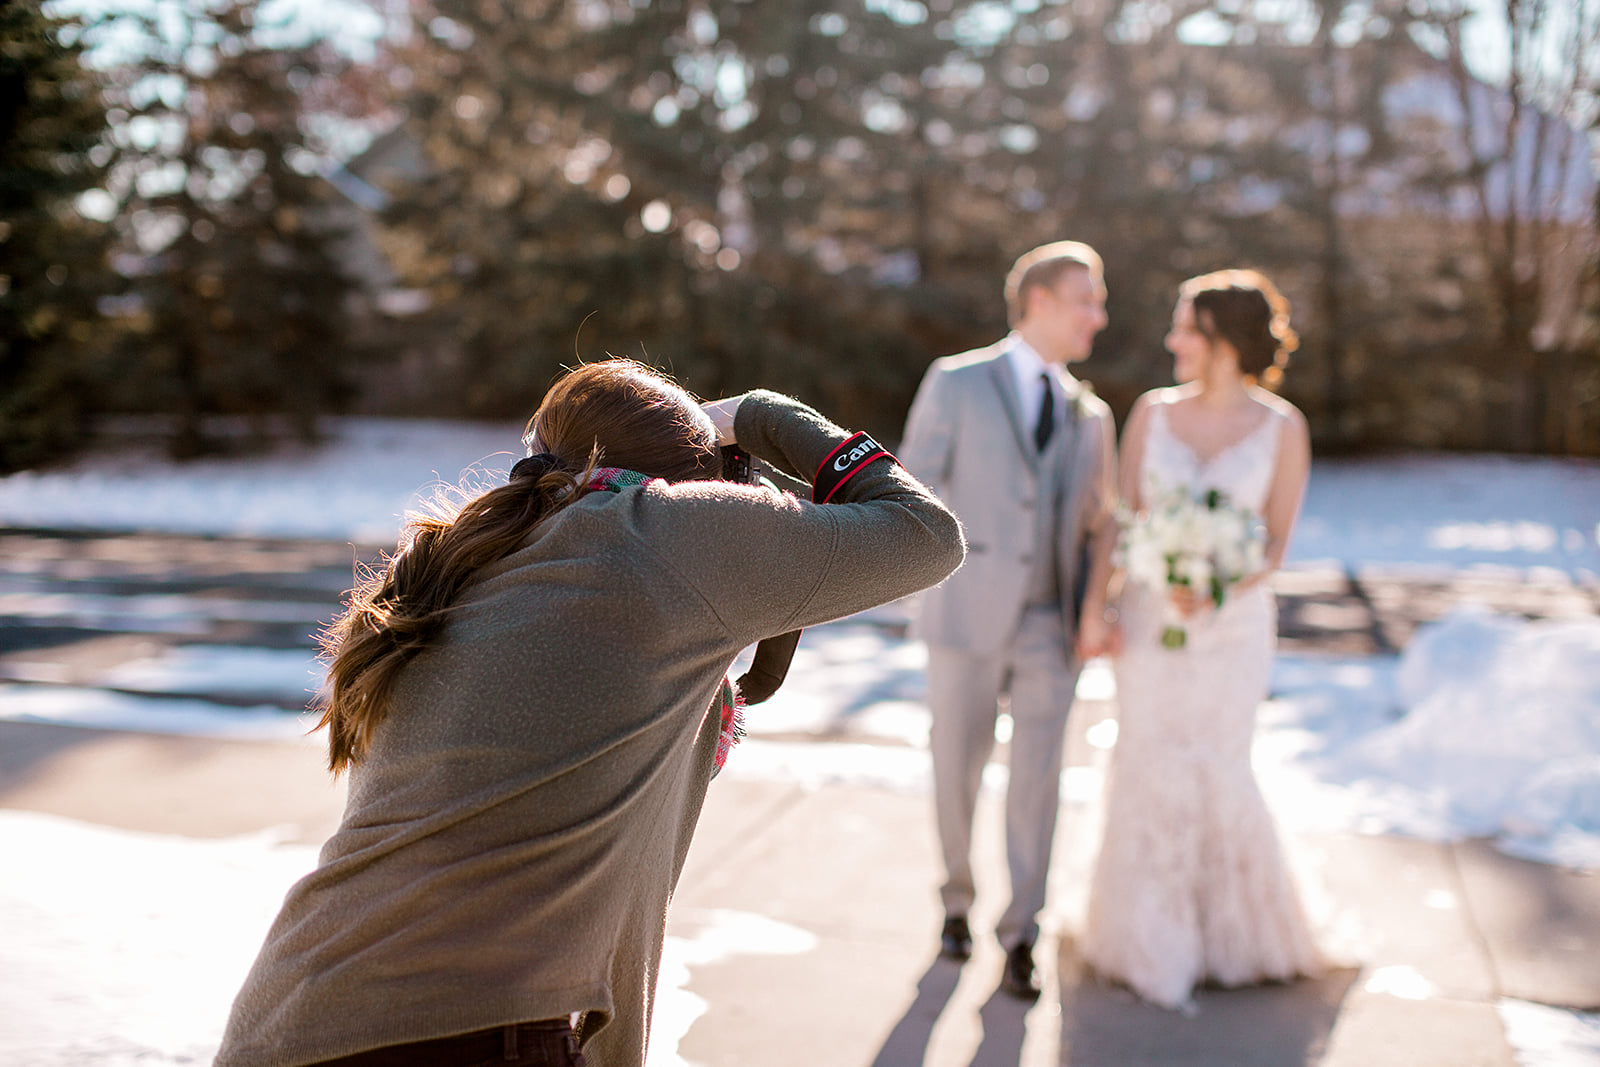 Royal Cliff photographer included in your wedding package | Photo by Rachel Graff Photography